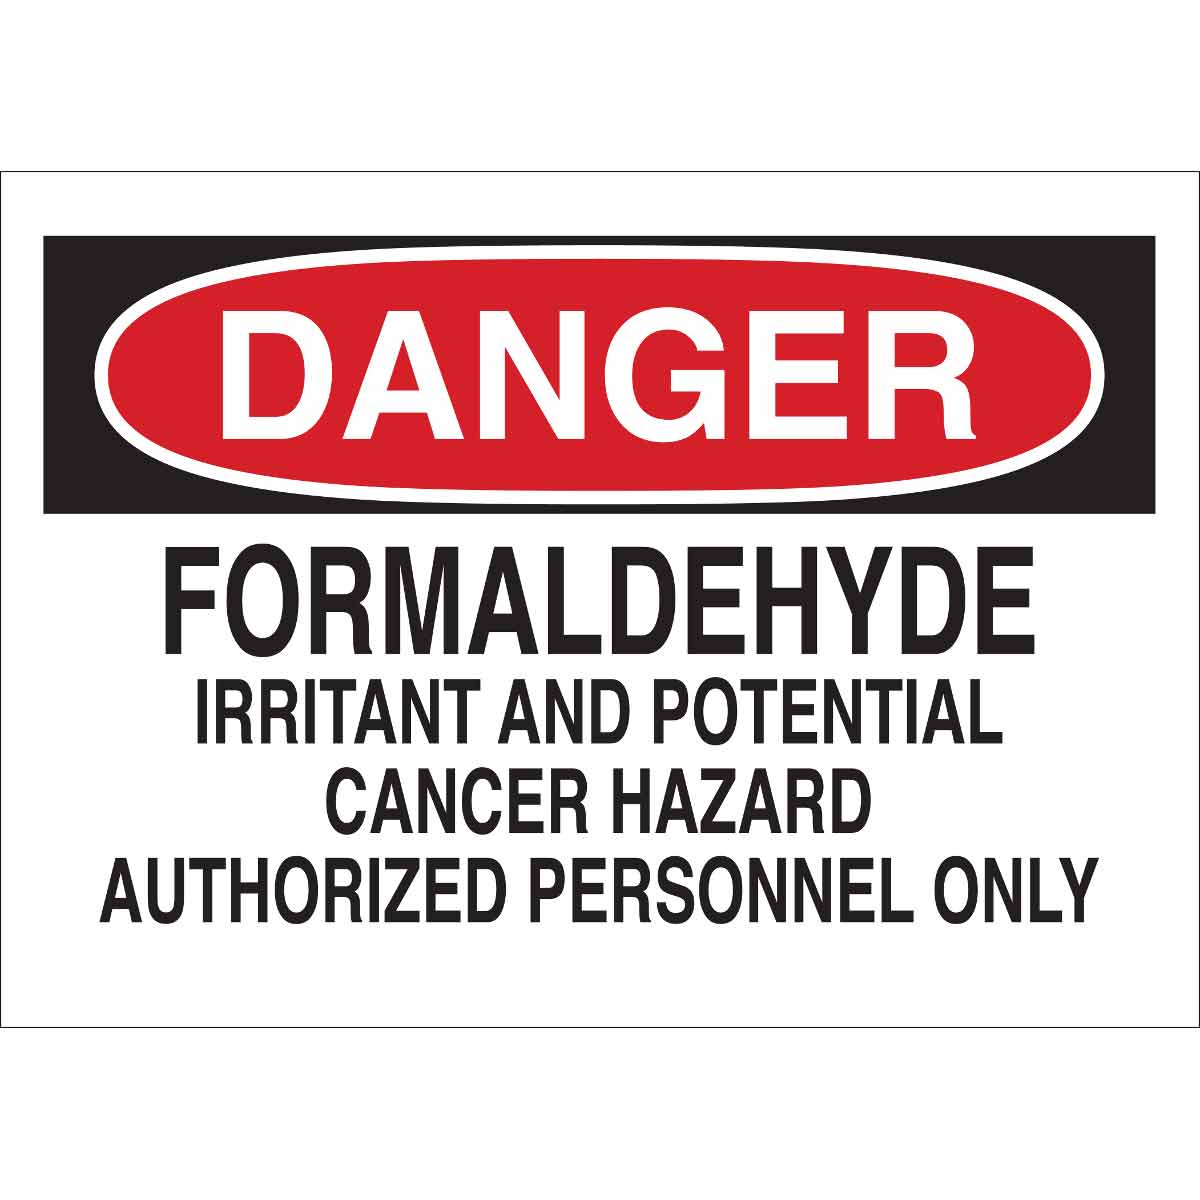 graphic relating to Authorized Personnel Only Sign Printable named Brady Element: 43508 Hazard Formaldehyde Irritant And